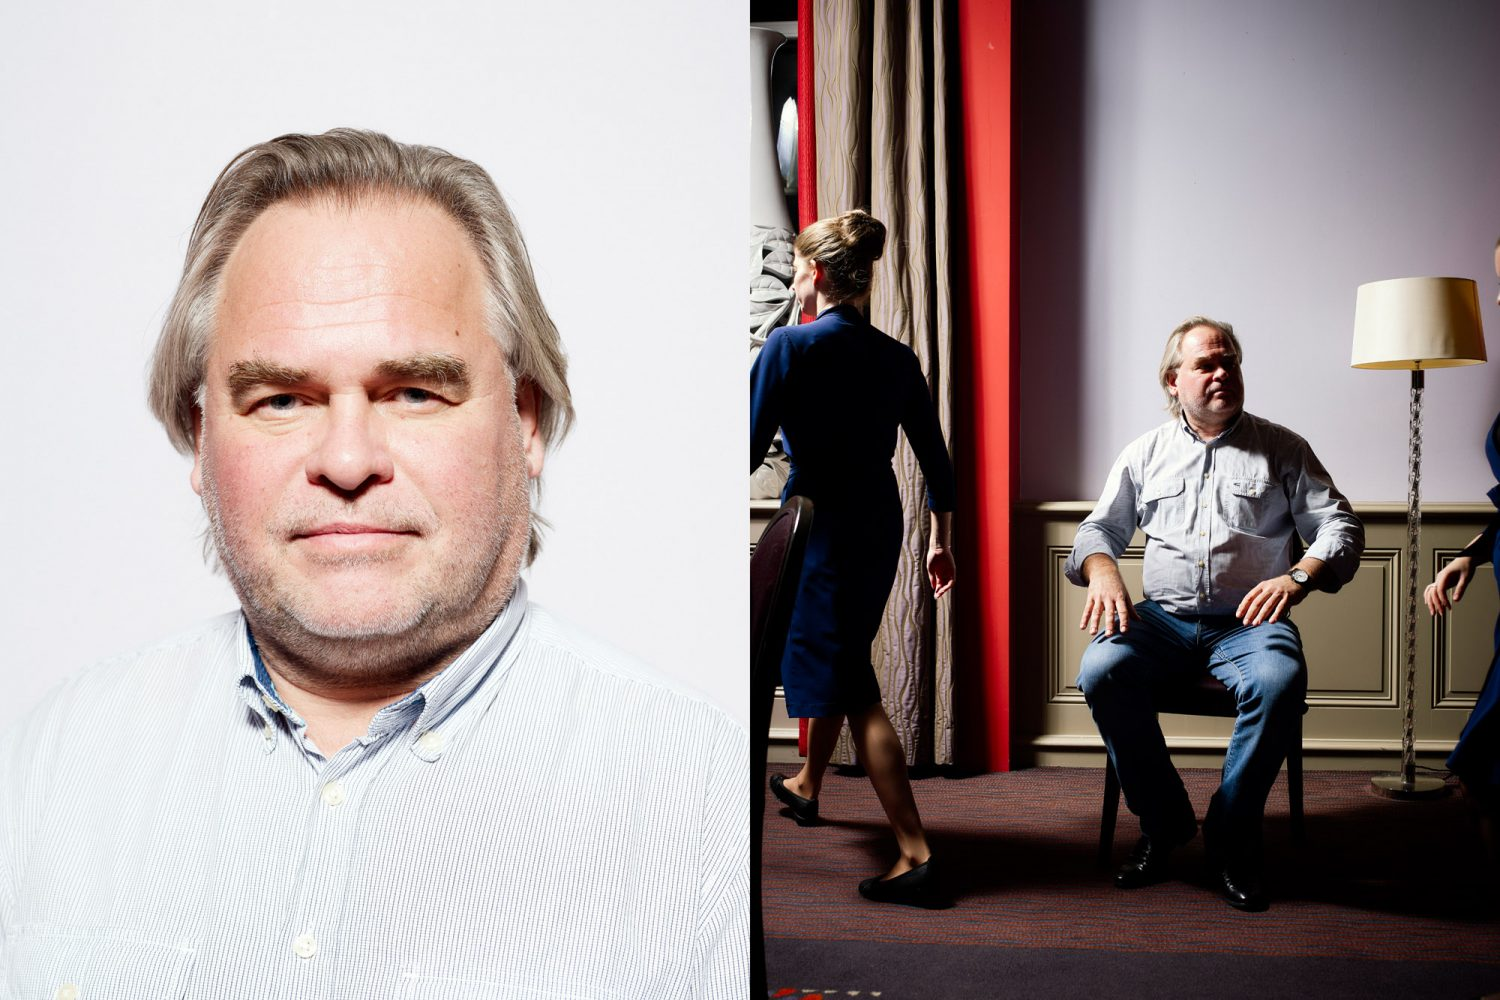 Nederland, Amsterdam, 30-11-2017 Eugene Kaspersky ( Yevgeny Valentinovich Kaspersky), Russian cybersecurity expert and the CEO of Kaspersky Lab. PHOTO AND COPYRIGHT ROGER CREMERS